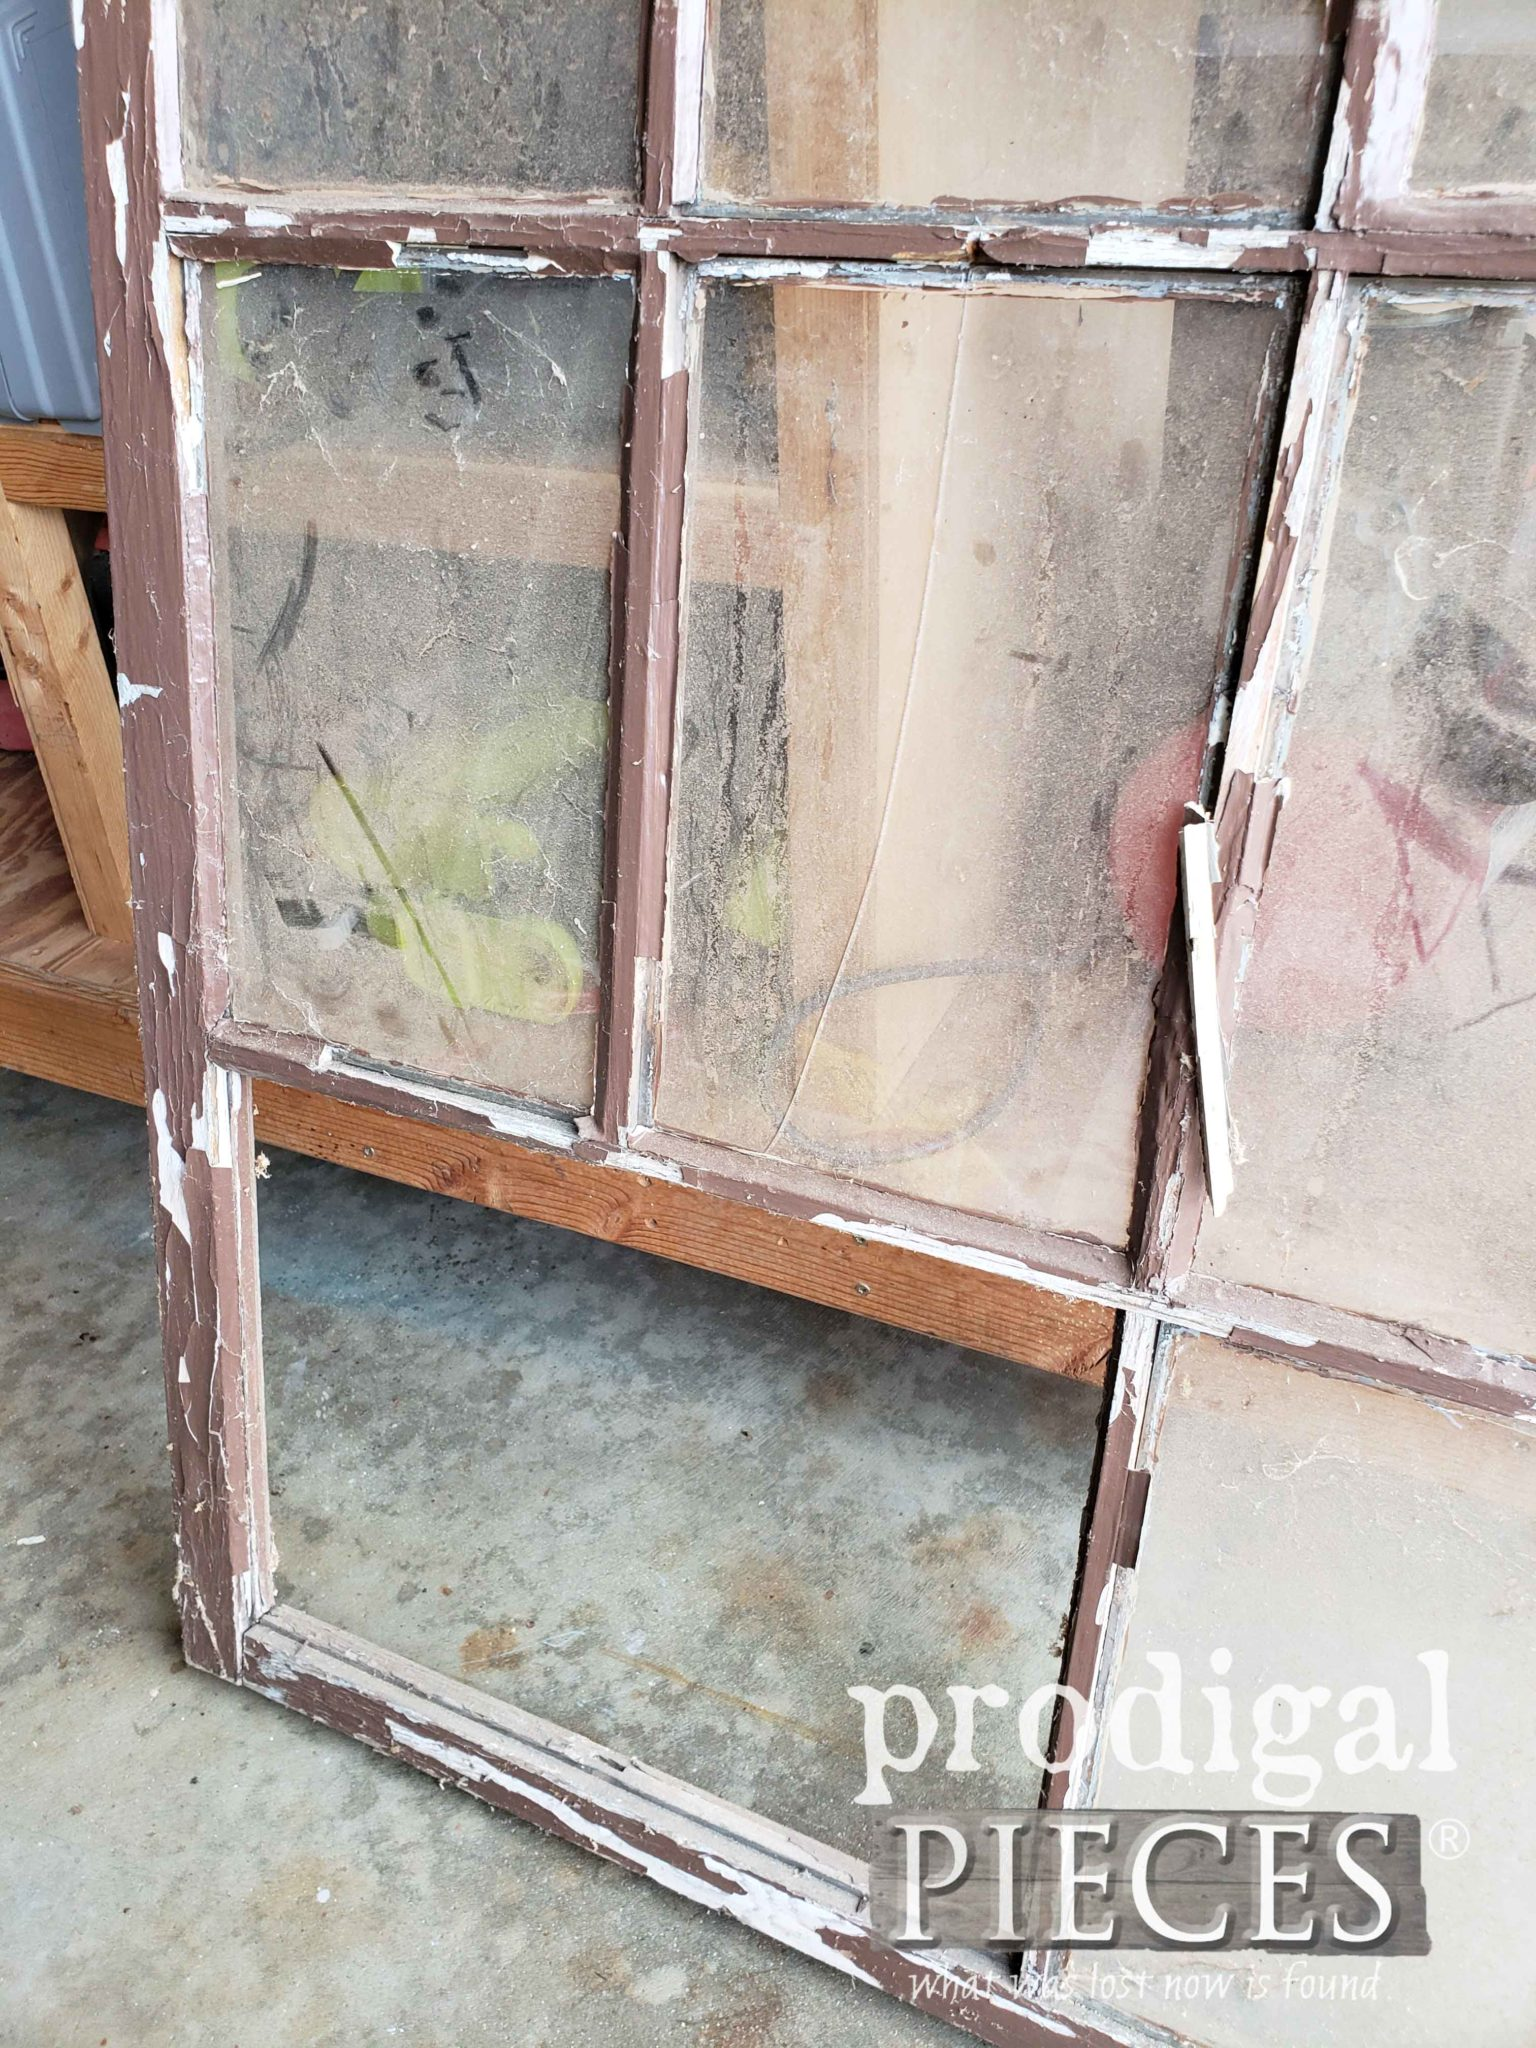 Damaged Window Corner | prodigalpieces.com